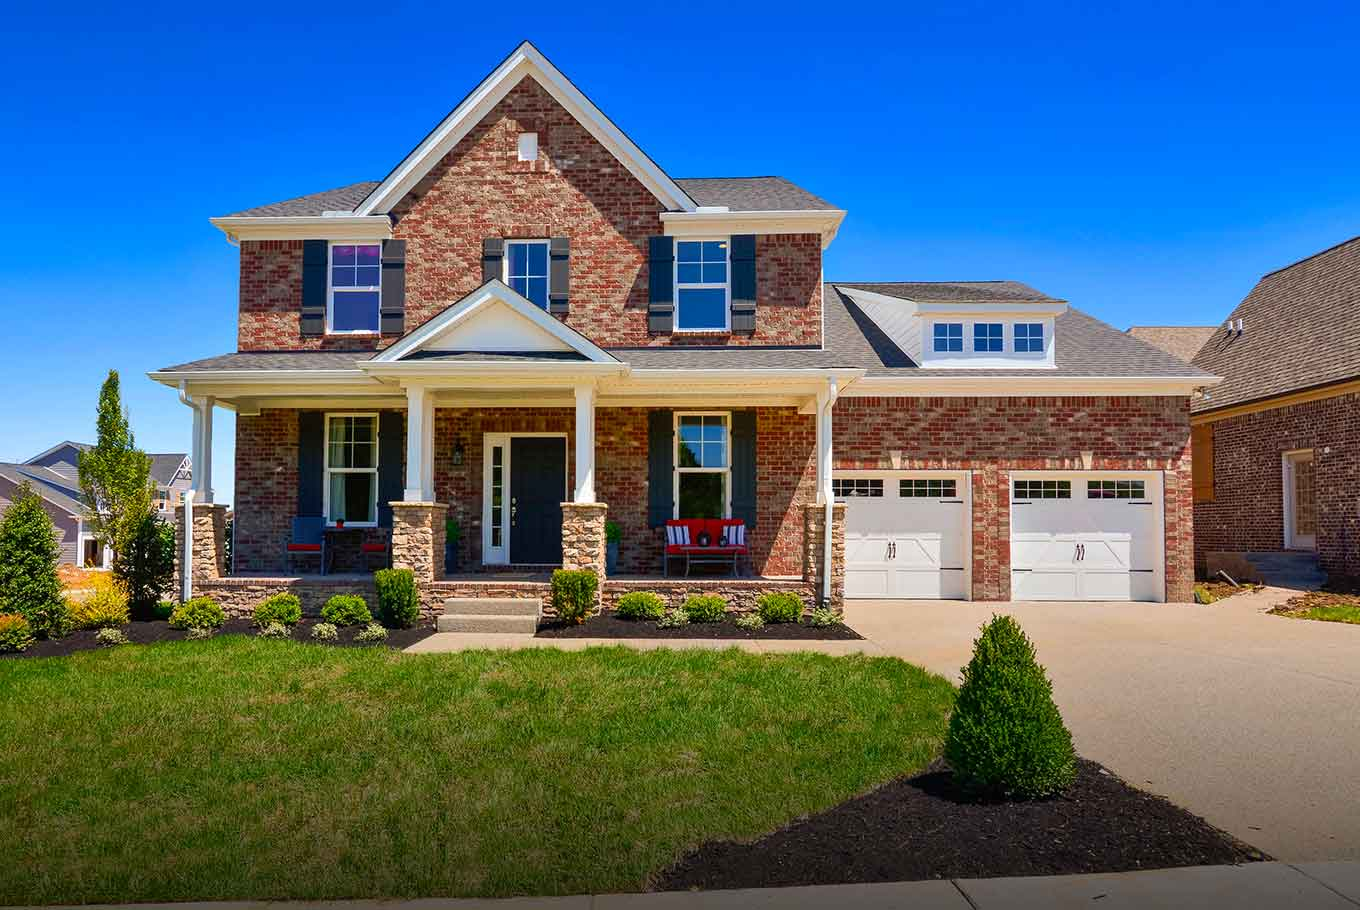 nashville home builders best creating infill homes meeting housing demand carbine with